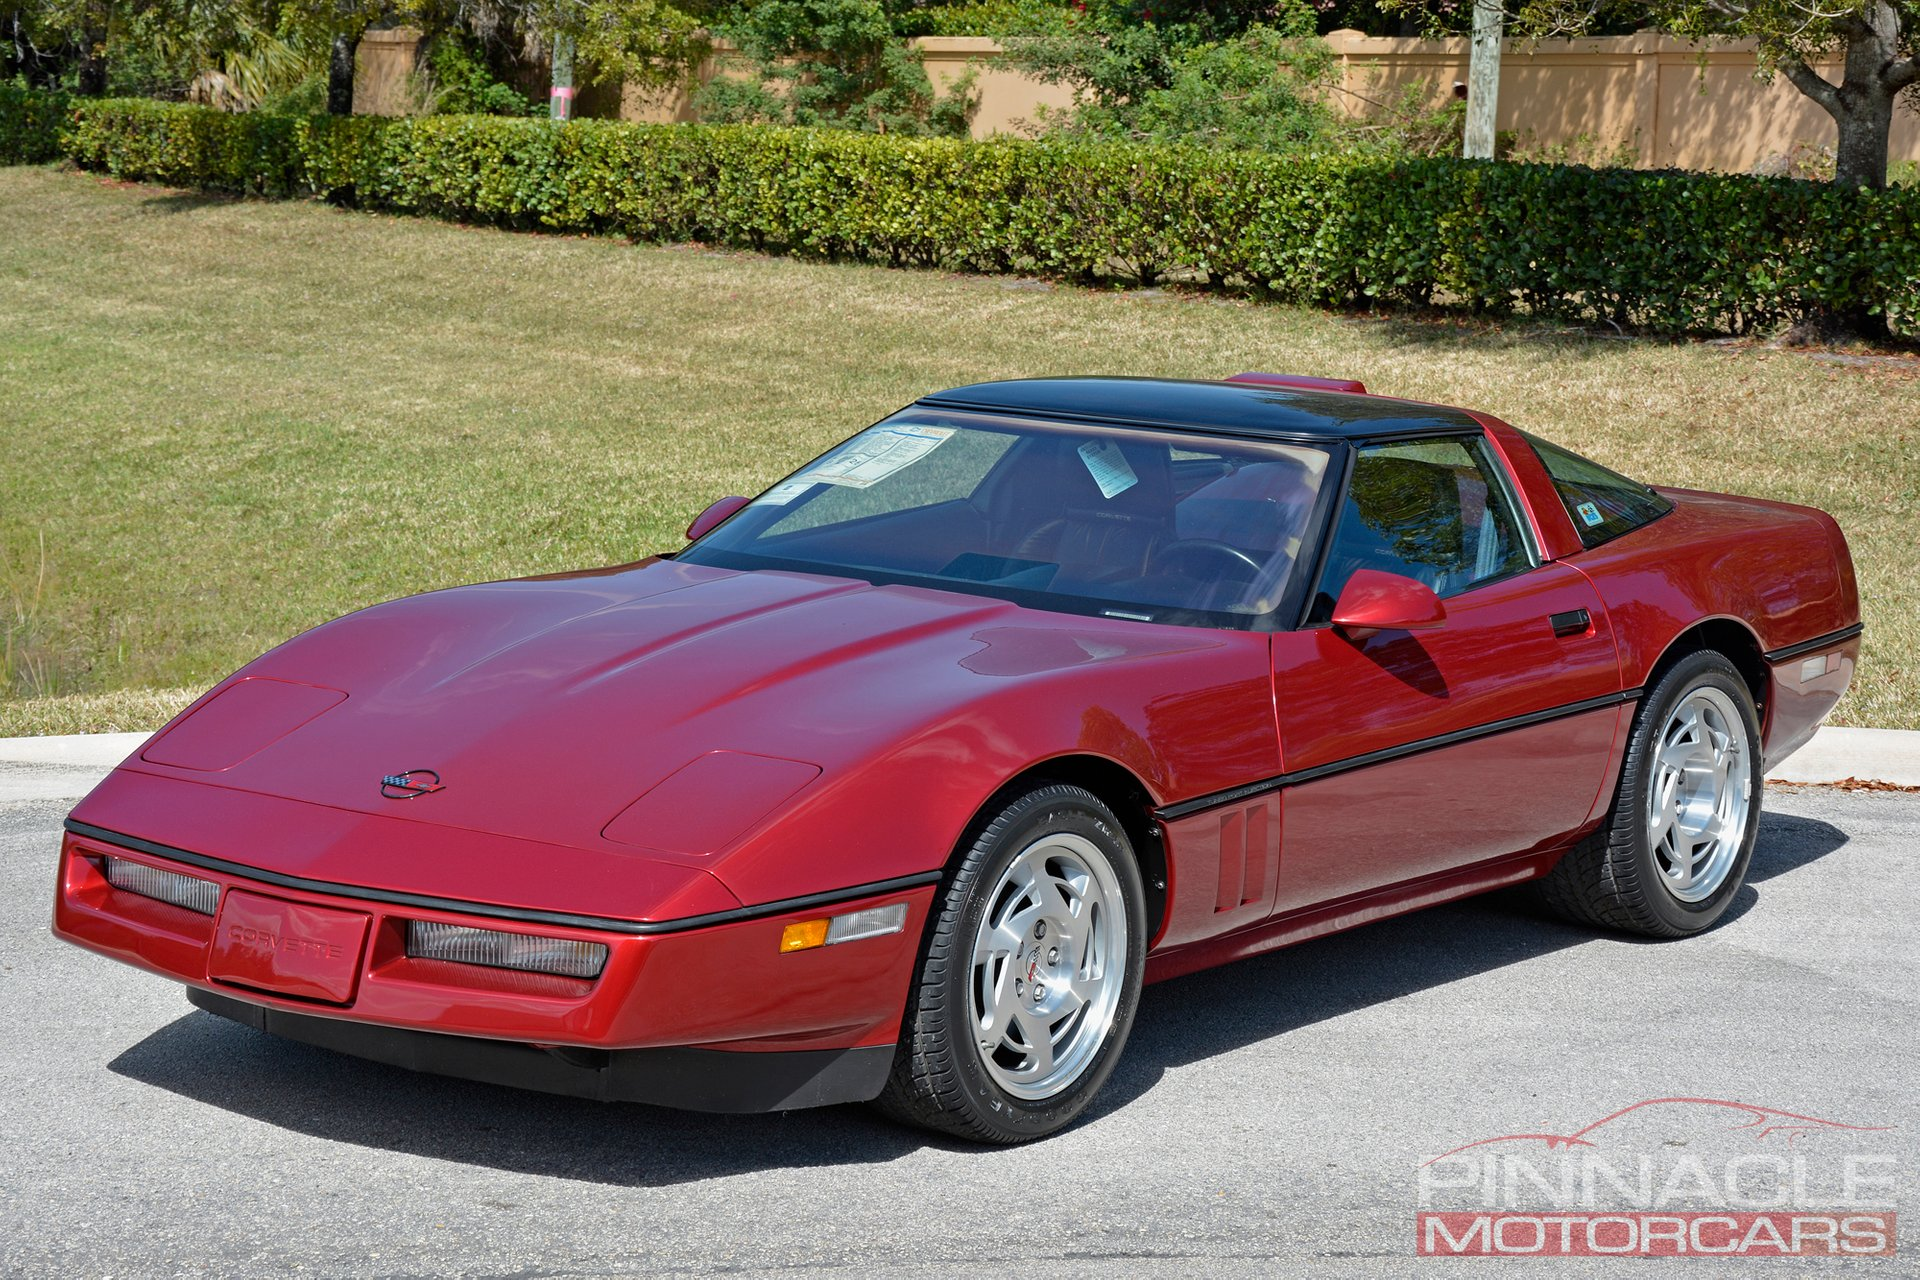 1990 Chevrolet Corvette Zr1 1990 Chevrolet Corvette Zr1 For Sale 111763 Mcg